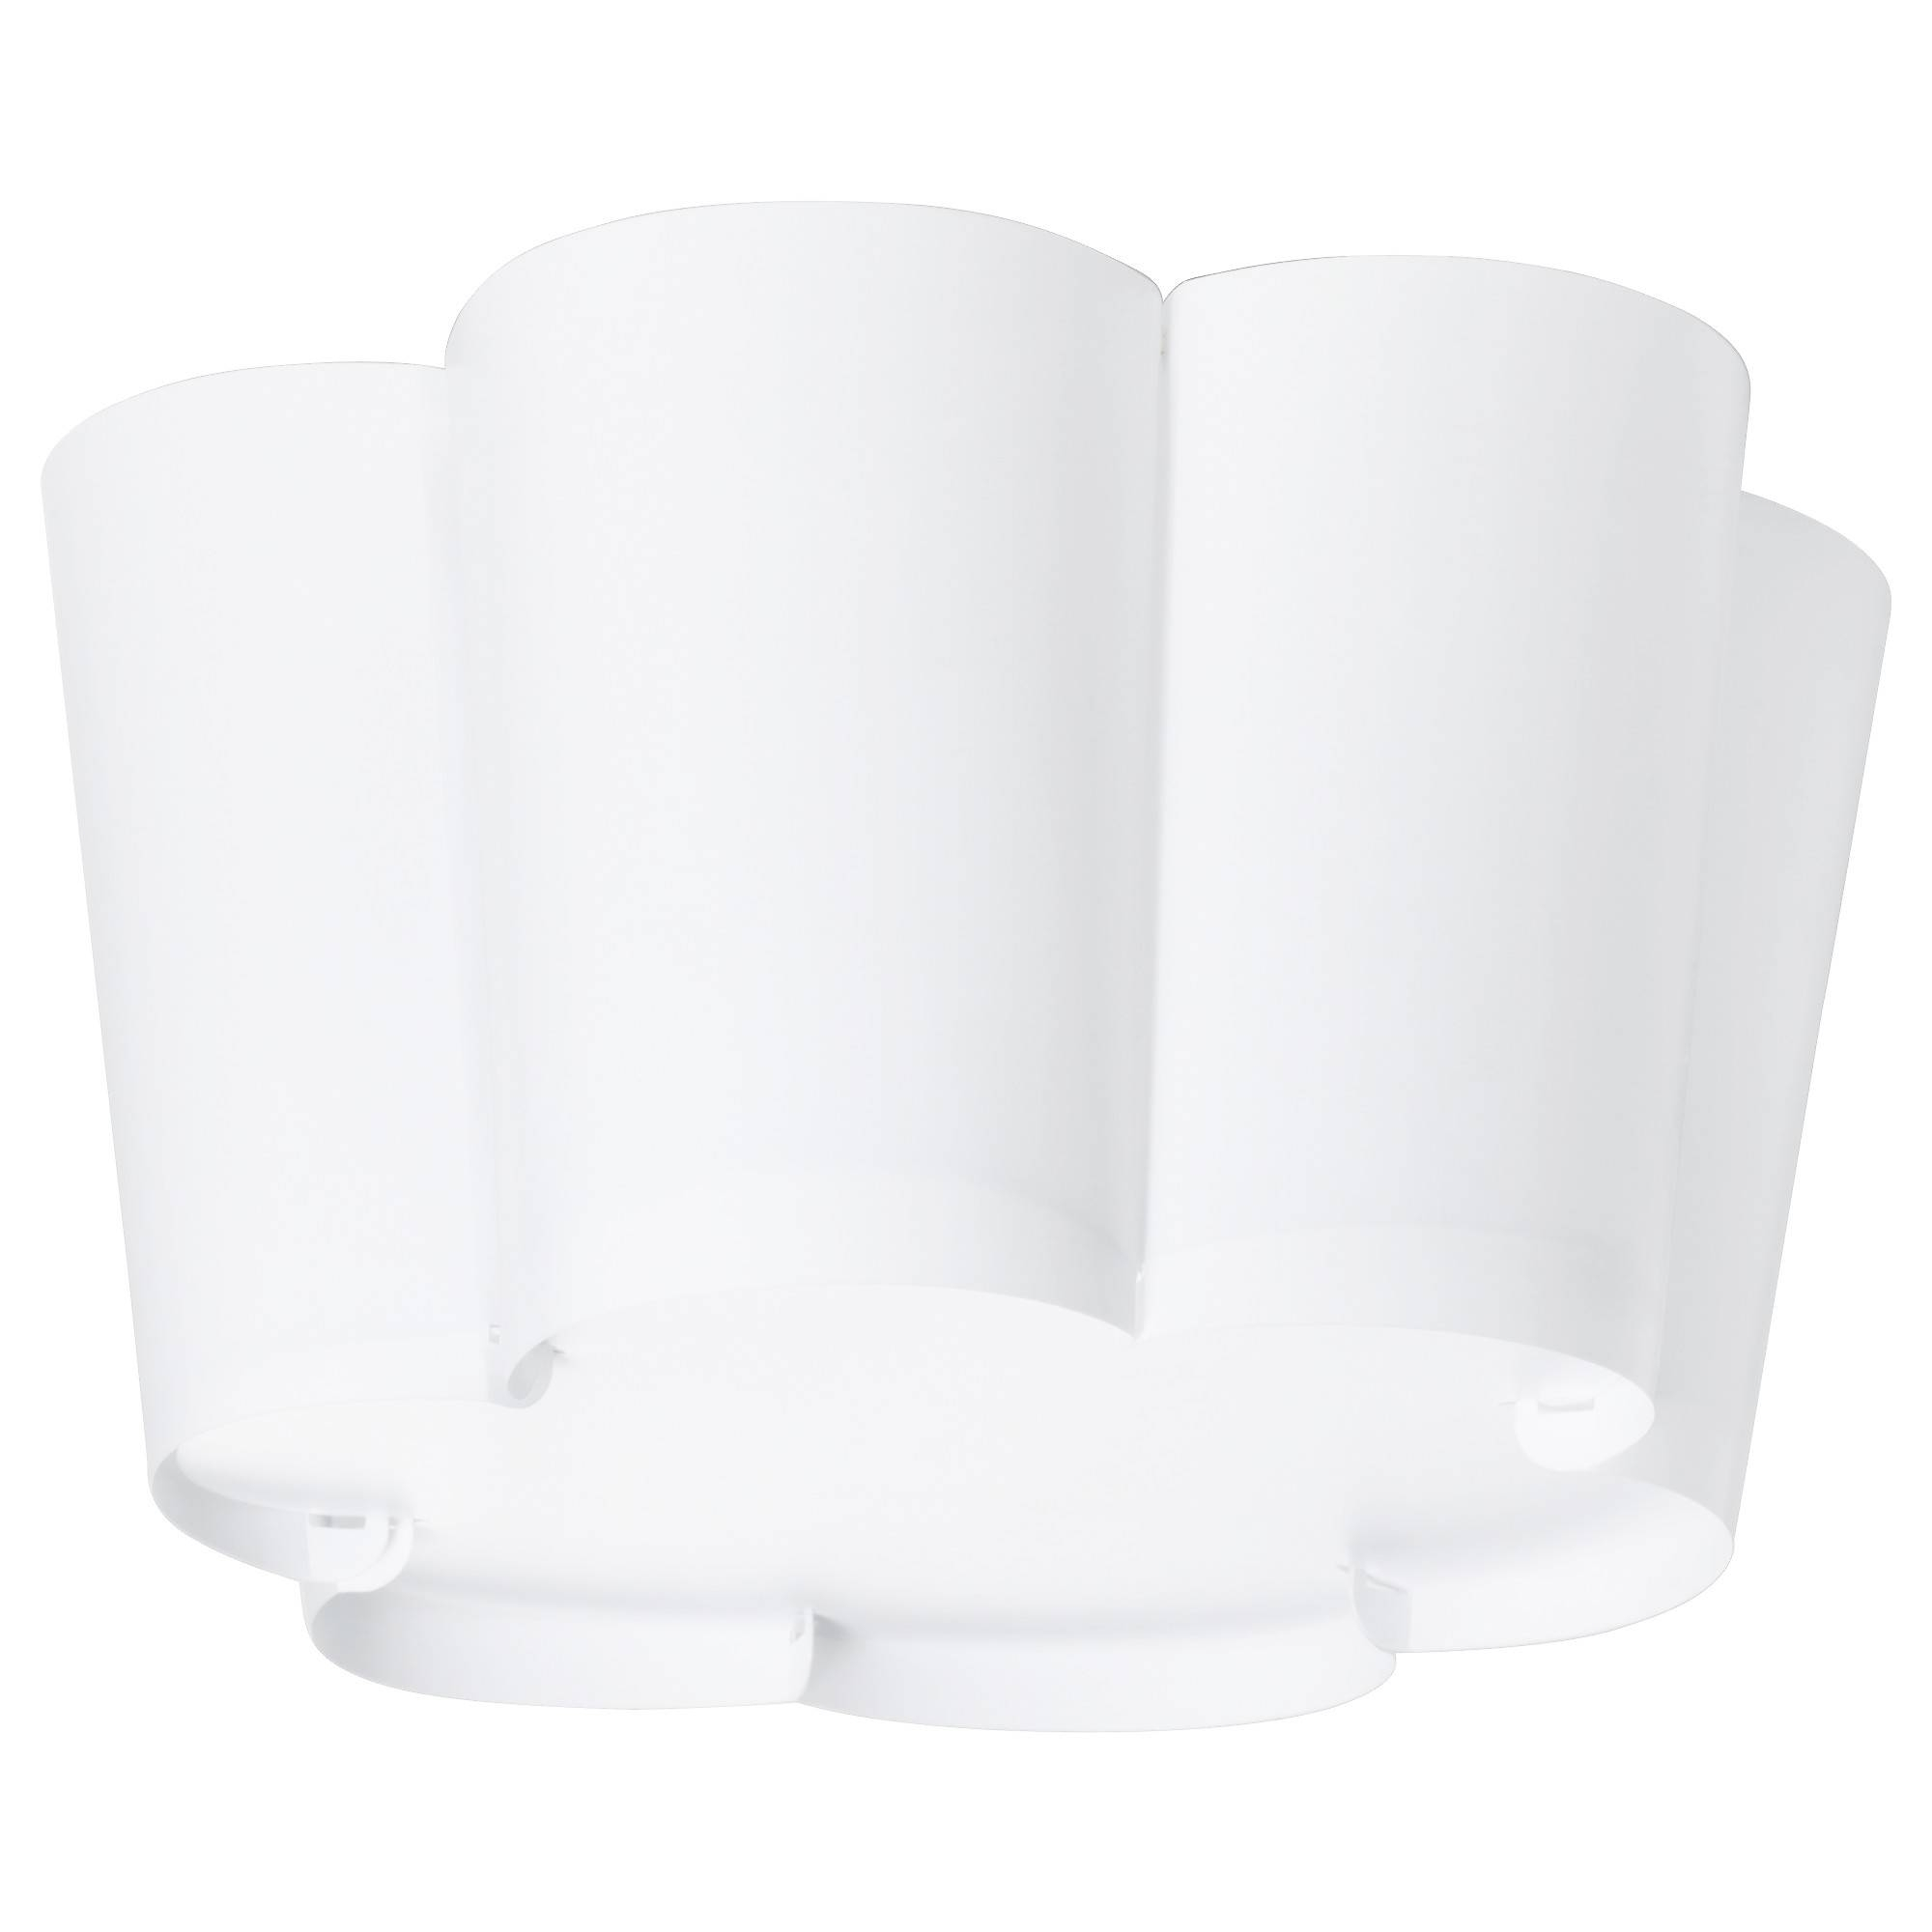 Ceiling Lights & Lamps - Ikea pertaining to Ikea Recessed Lights (Image 2 of 15)